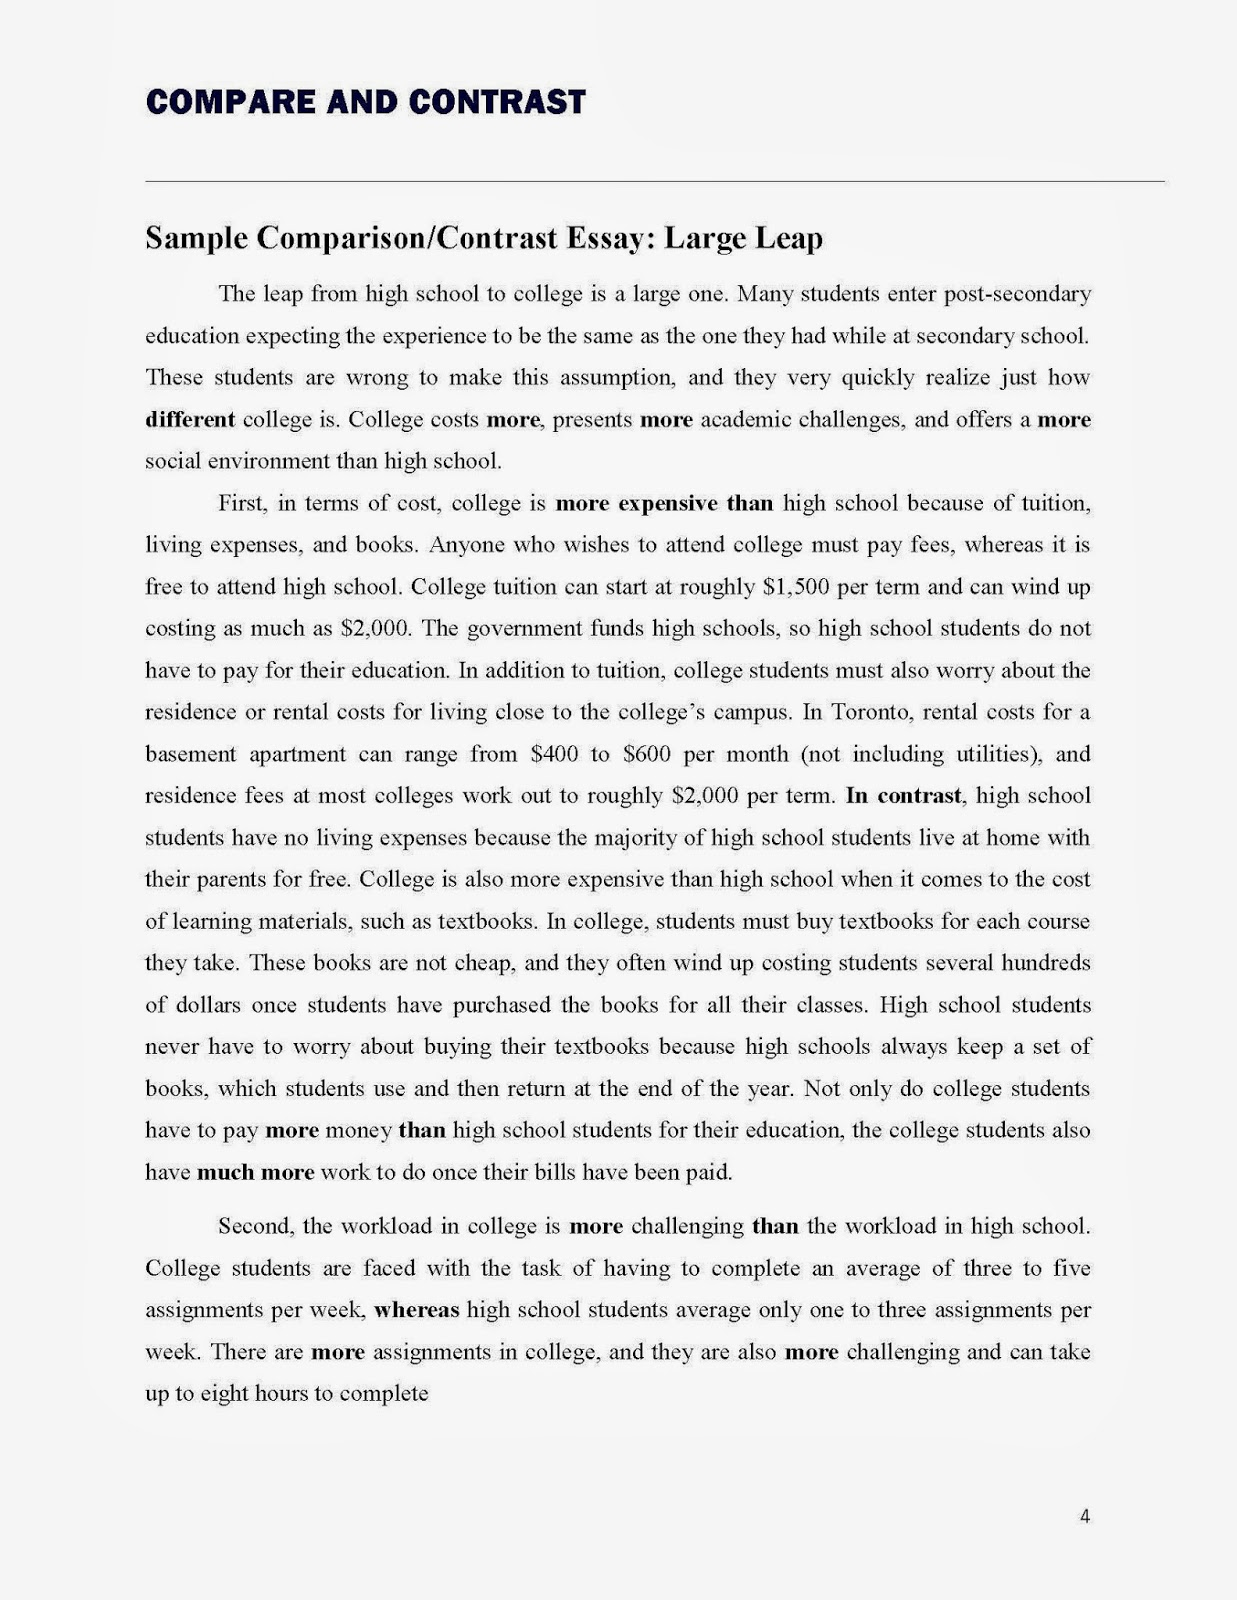 Israeli Palestinian Conflict Essay Compare Contrast Essay Prompts Compare Contrast Essay Writing Compare And Contrast  Essay Prompt Liao Ipnodns Rucompare How To Write An Argument Essay also Persuasive Speech Essays A Compare Contrast Essay Compare Contrast Essay Prompts Compare  Random Essay